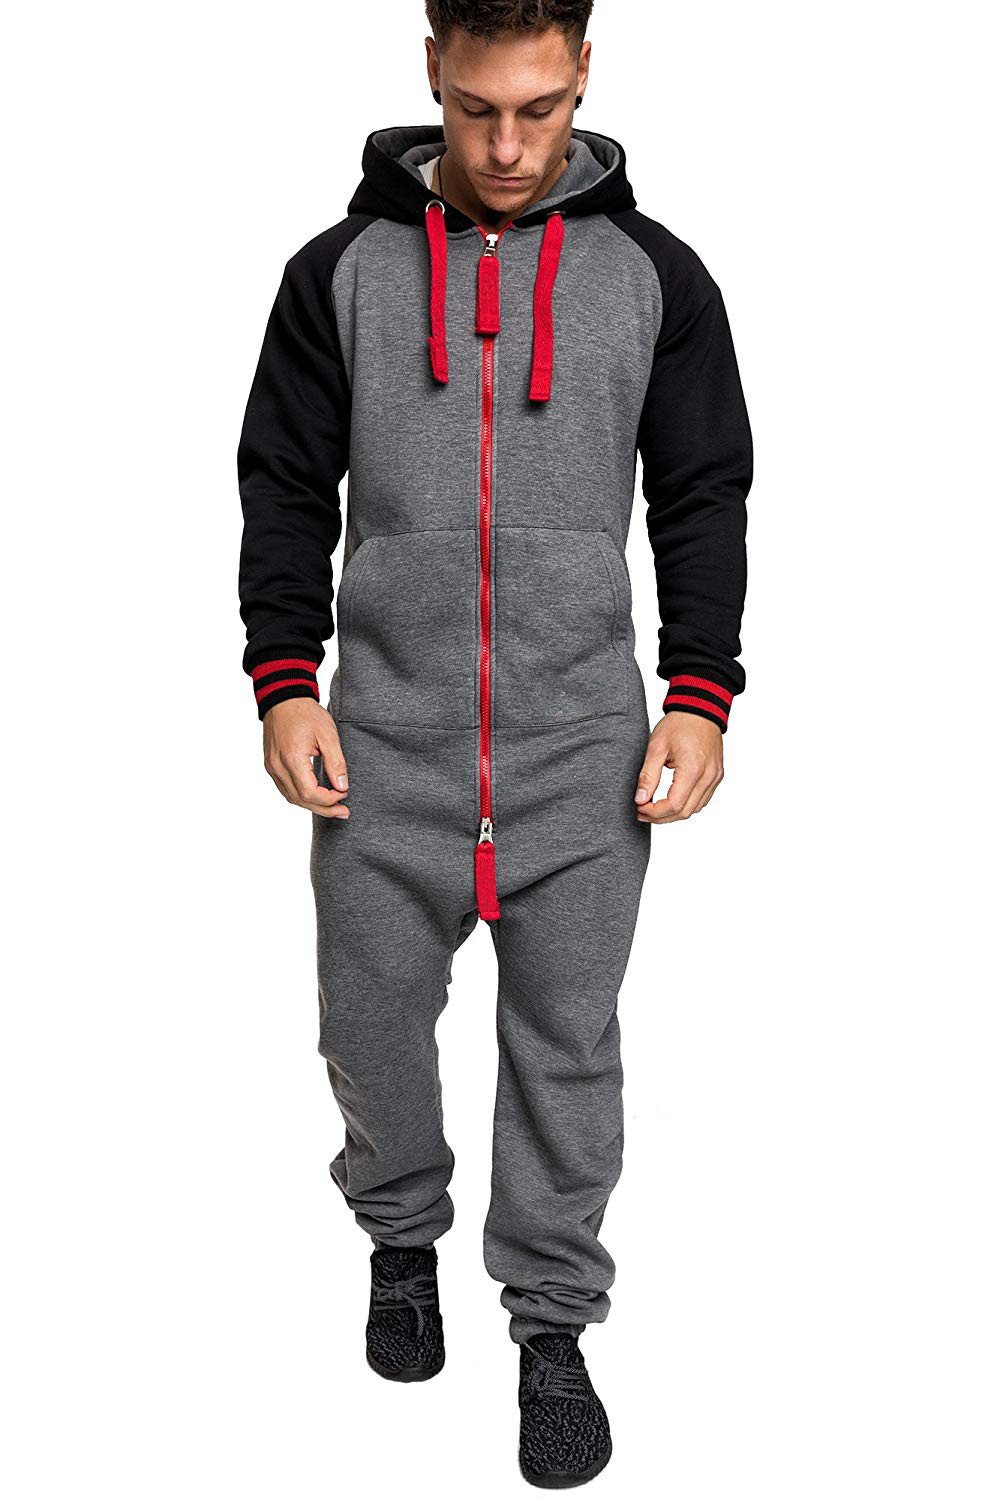 Casual Autumn Hooded Tracksuit Jumpsuit Long Pants Romper For Male Mens Fleece warm Overalls Sweatshirts Male Streetwear X9126 25